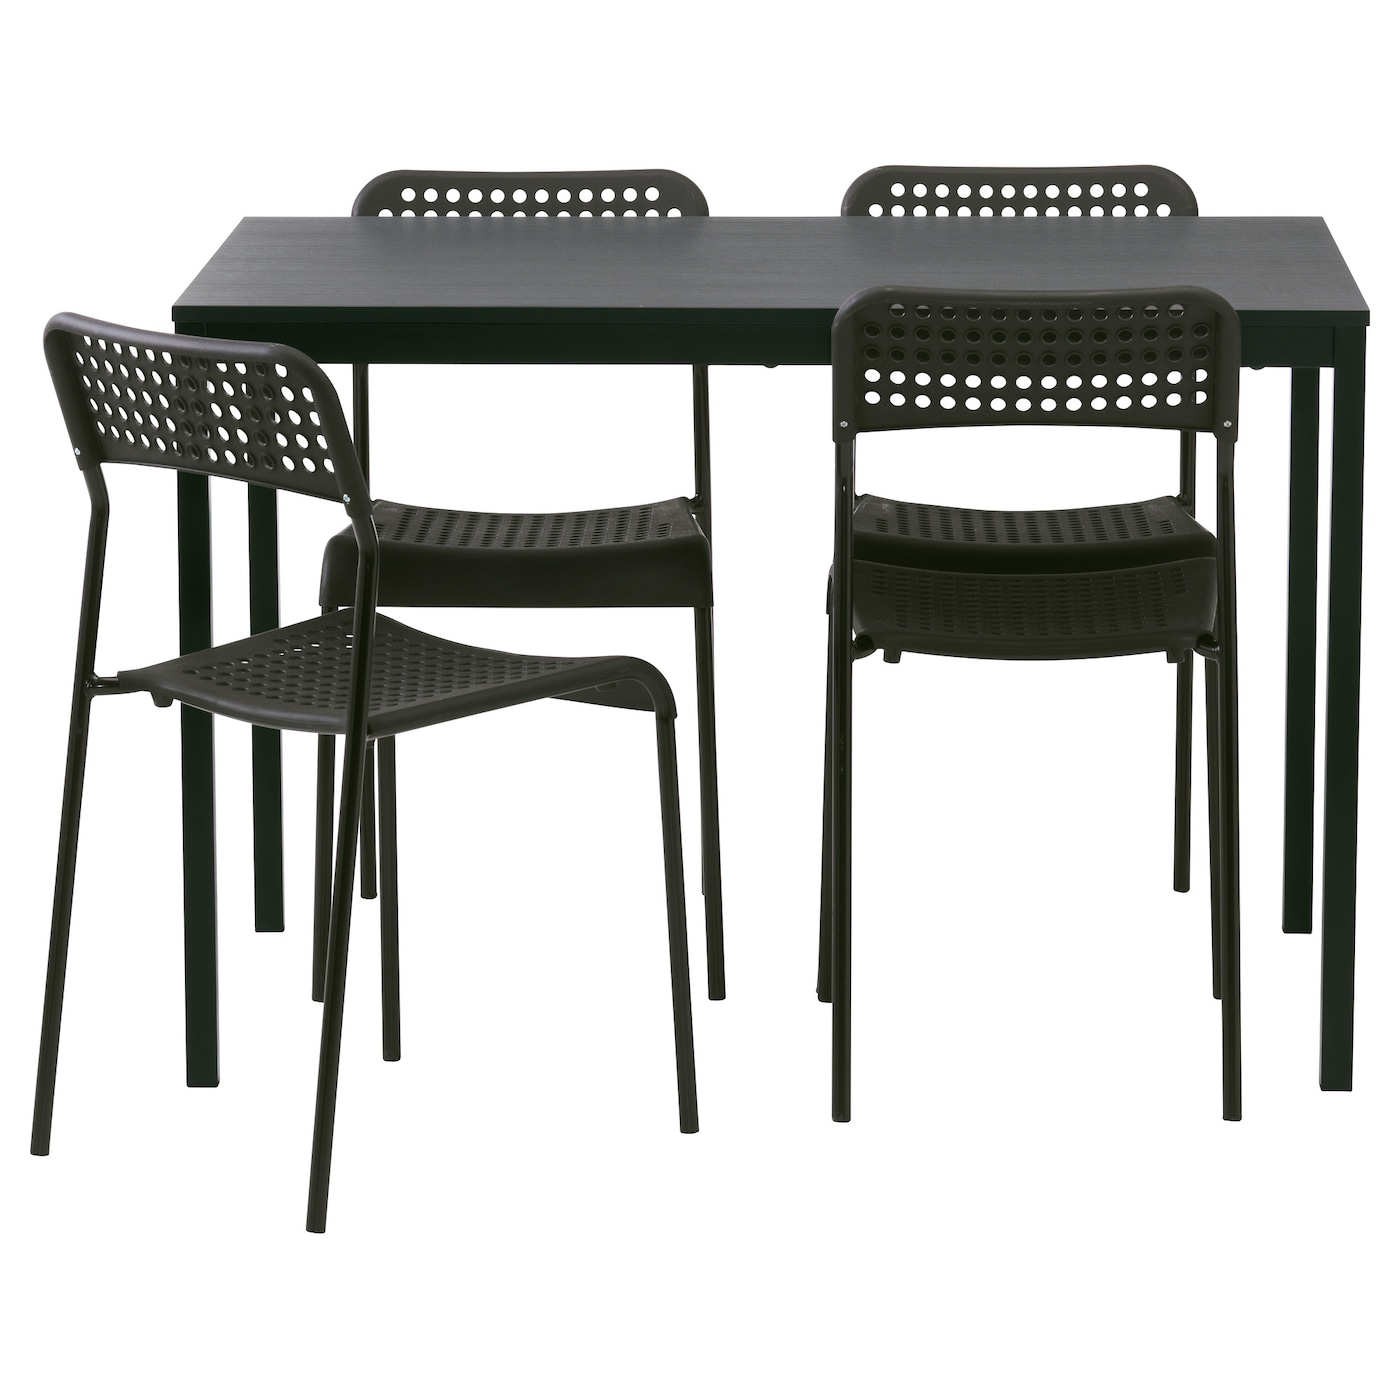 T rend adde table and 4 chairs black 110 cm ikea for Ikea dining table and chairs set